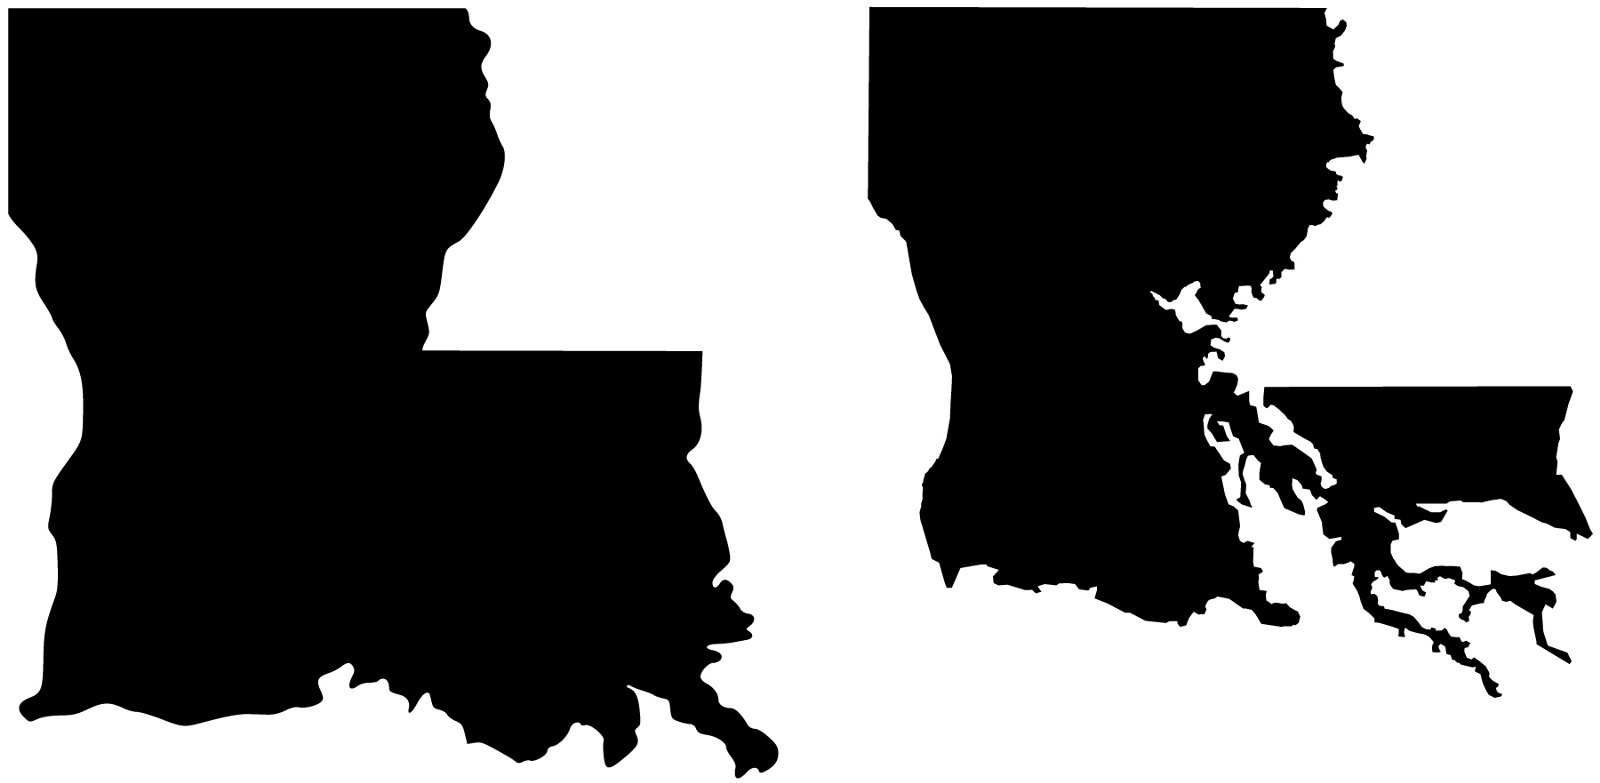 louisiana silhouette cricut - HD 1600×783